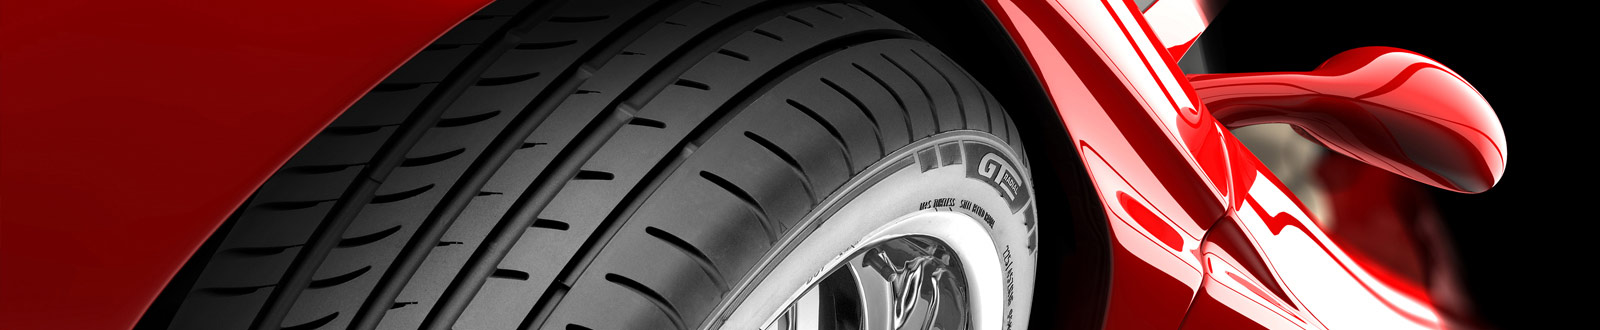 Gt Radial Champiro UHP1. Ultra High Performance. Excellent wet and dry handling.